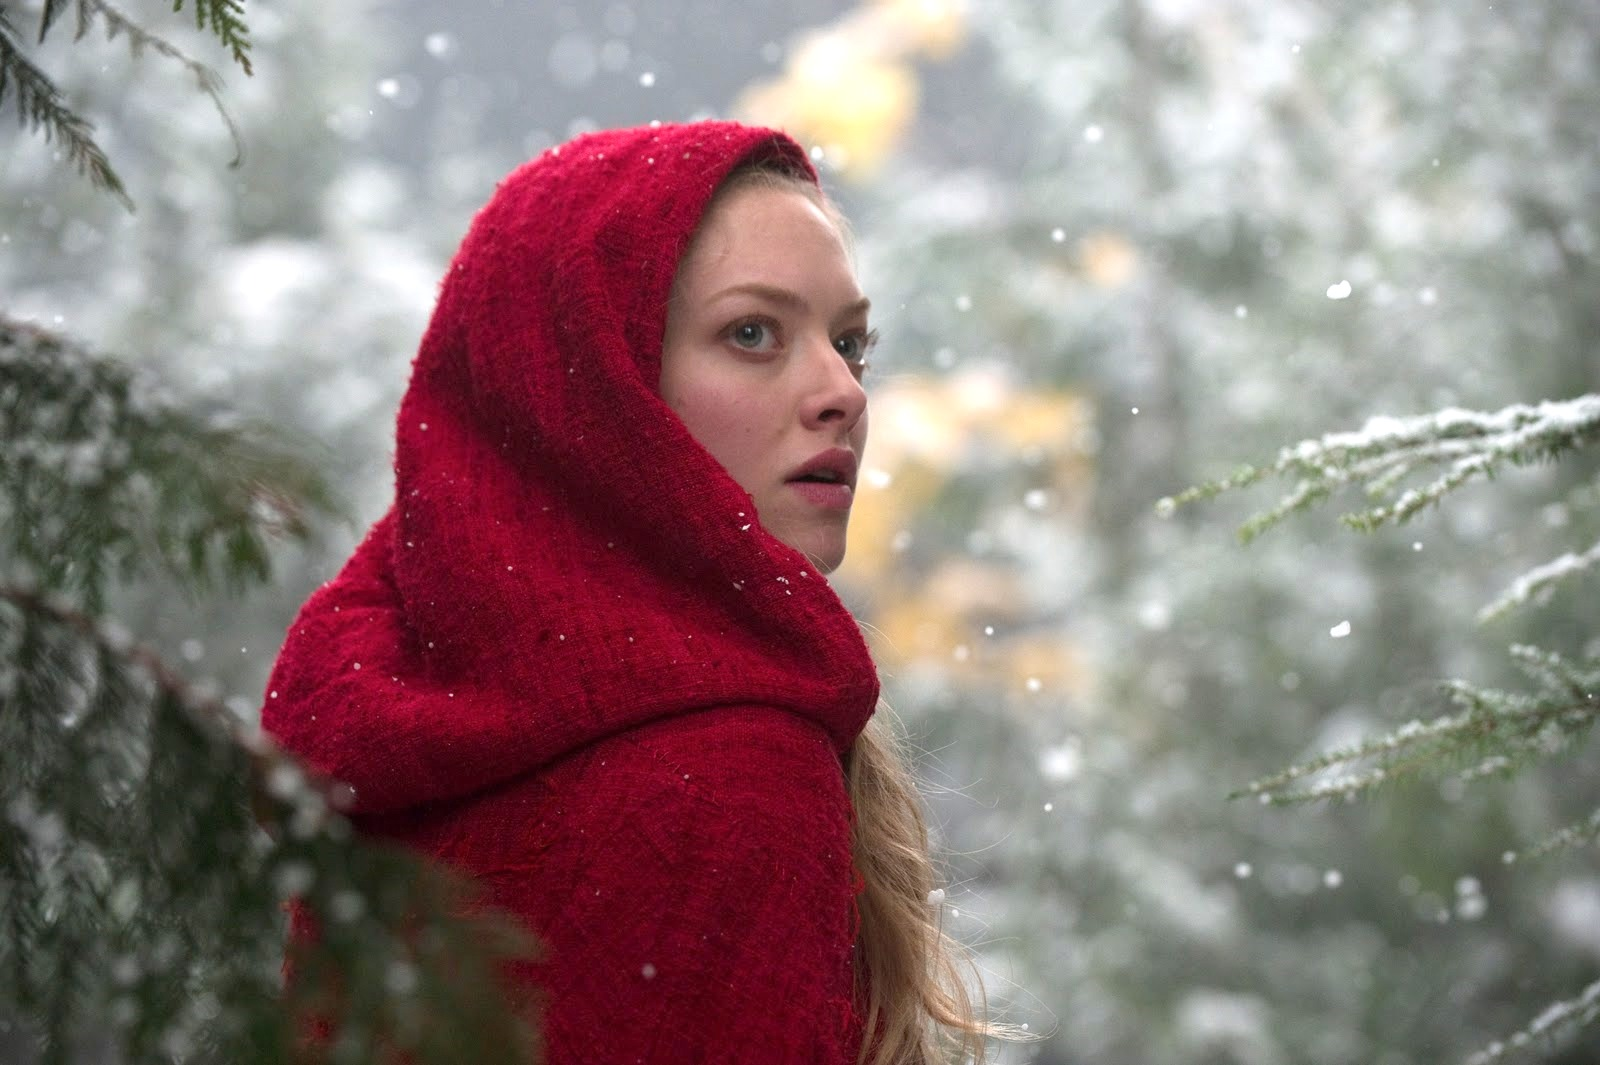 http://4.bp.blogspot.com/-UBzhSg9ZLko/TXyDWTT8XwI/AAAAAAABLFI/22F6j9qgwdM/s1600/red_riding_hood_movie_image_amanda_seyfried_.jpg